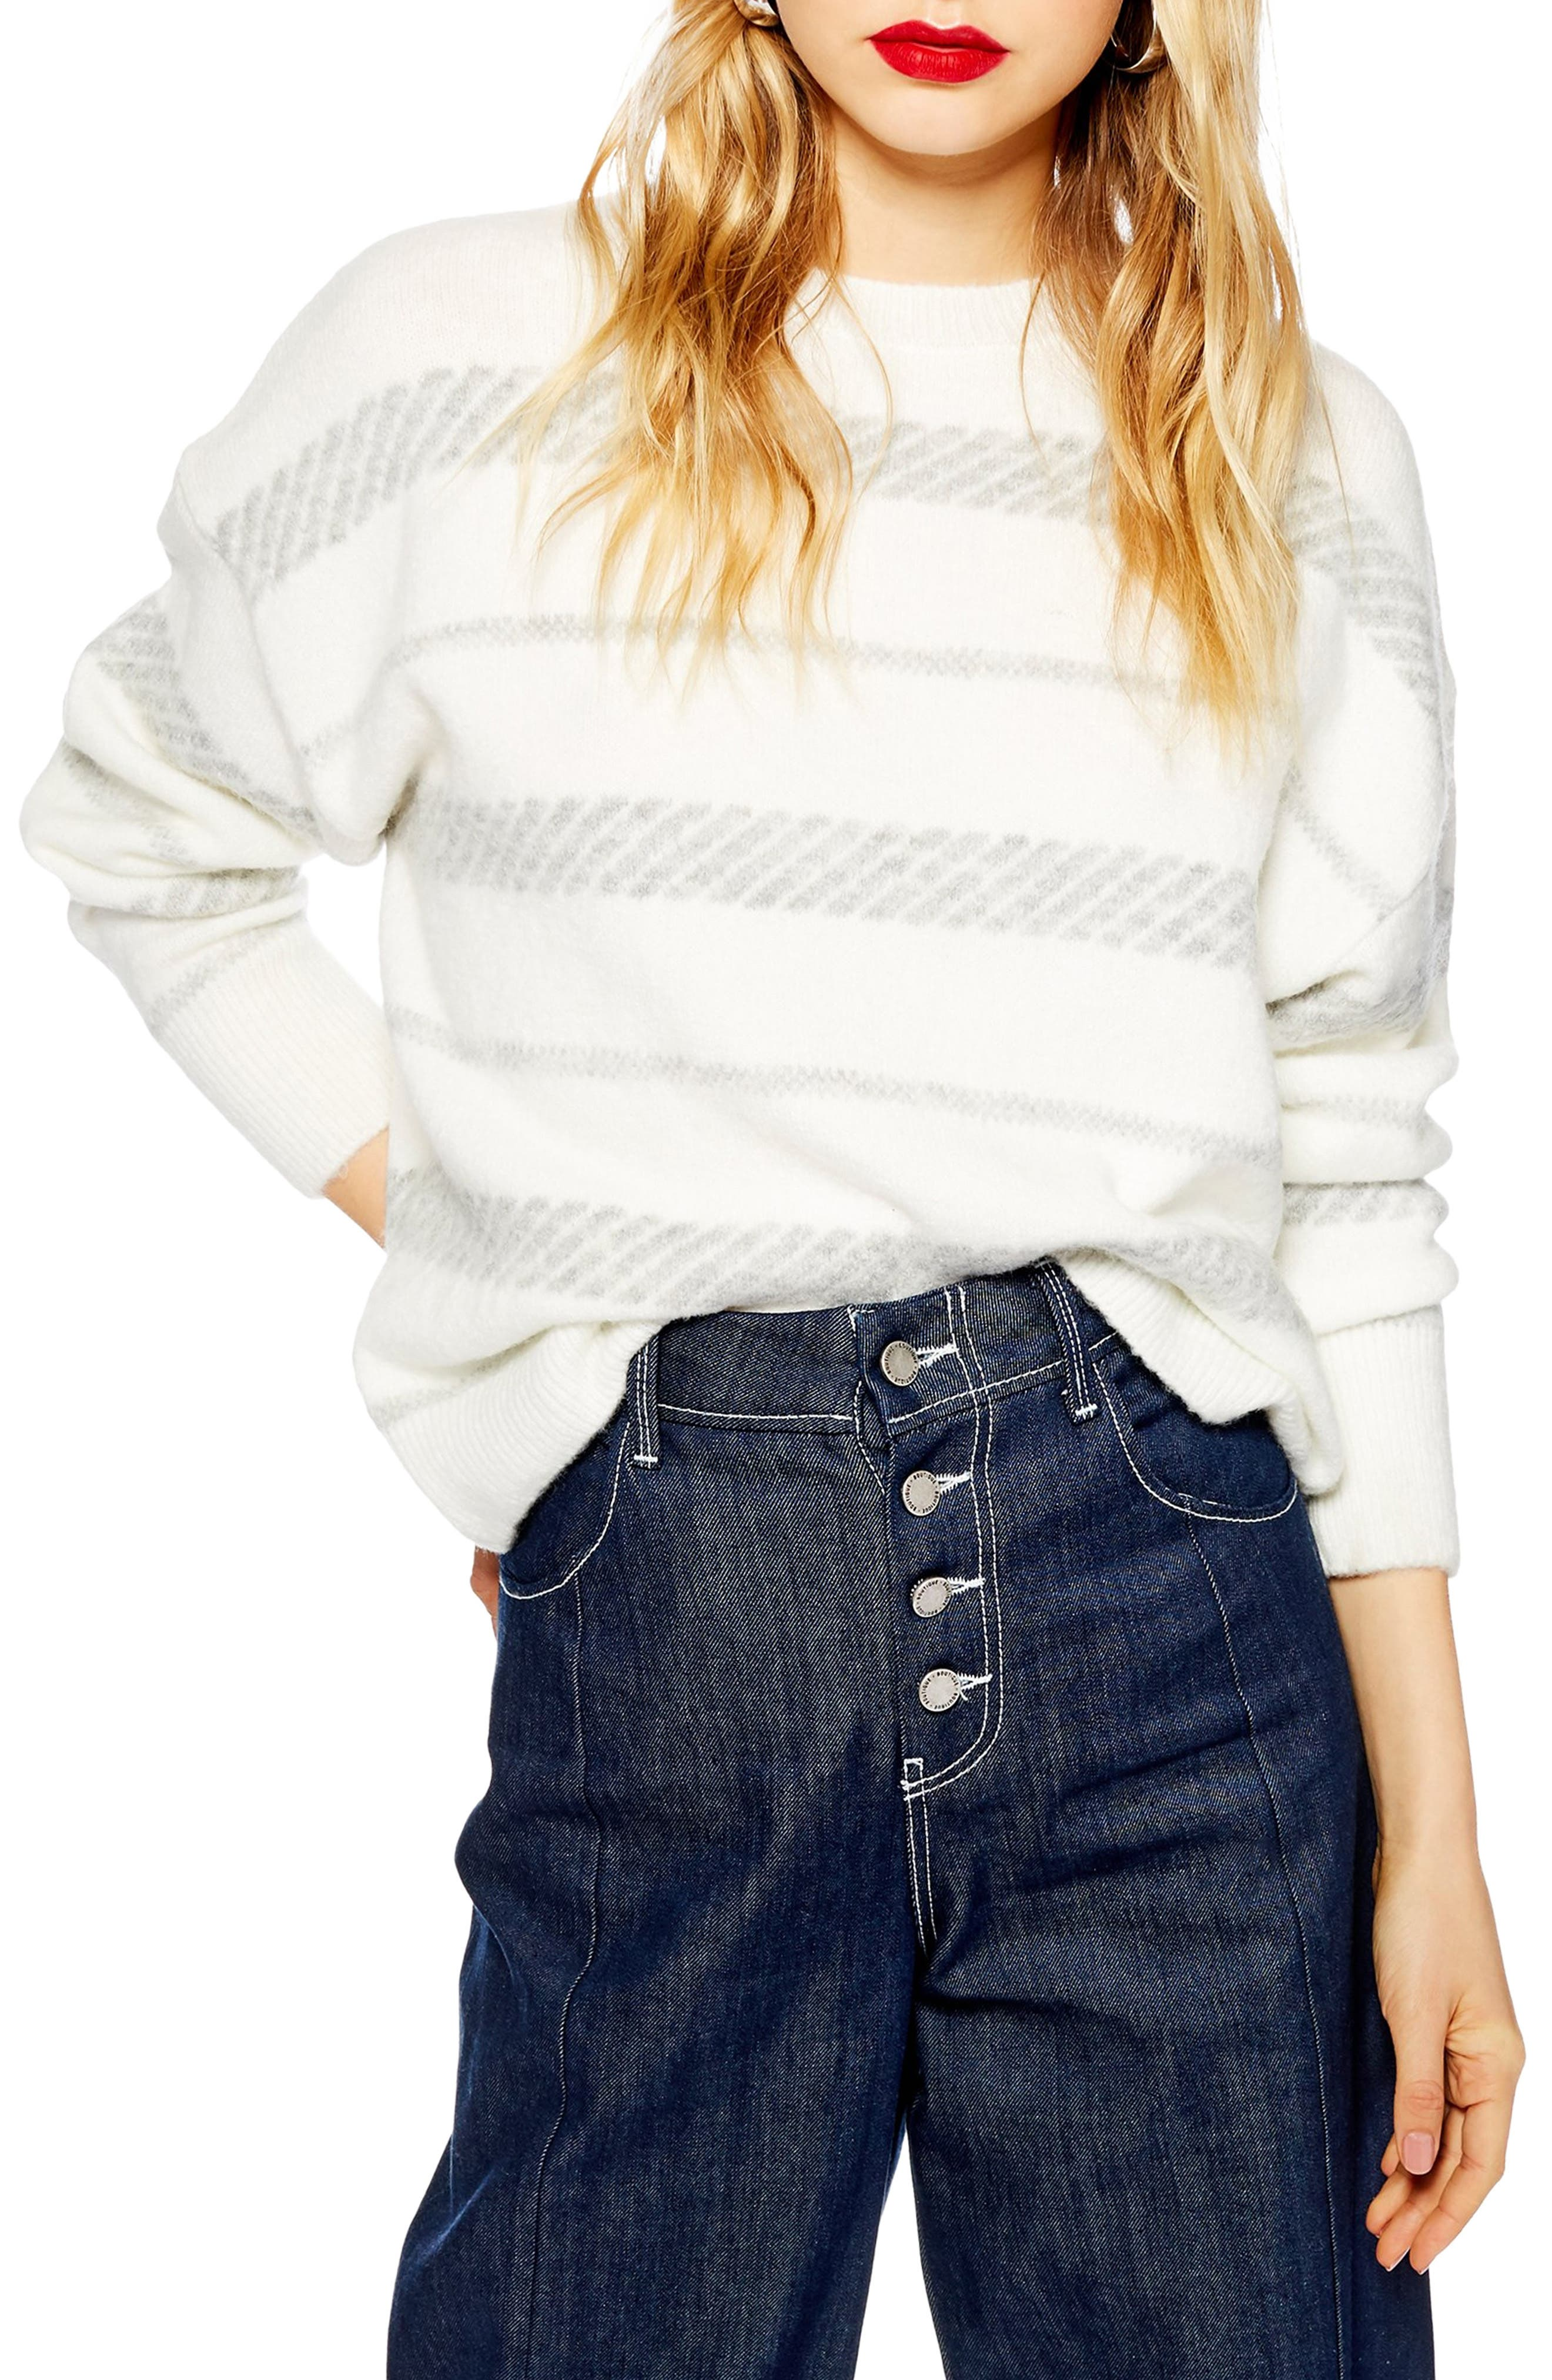 TOPSHOP, Supersoft Stripe Sweater, Main thumbnail 1, color, 900